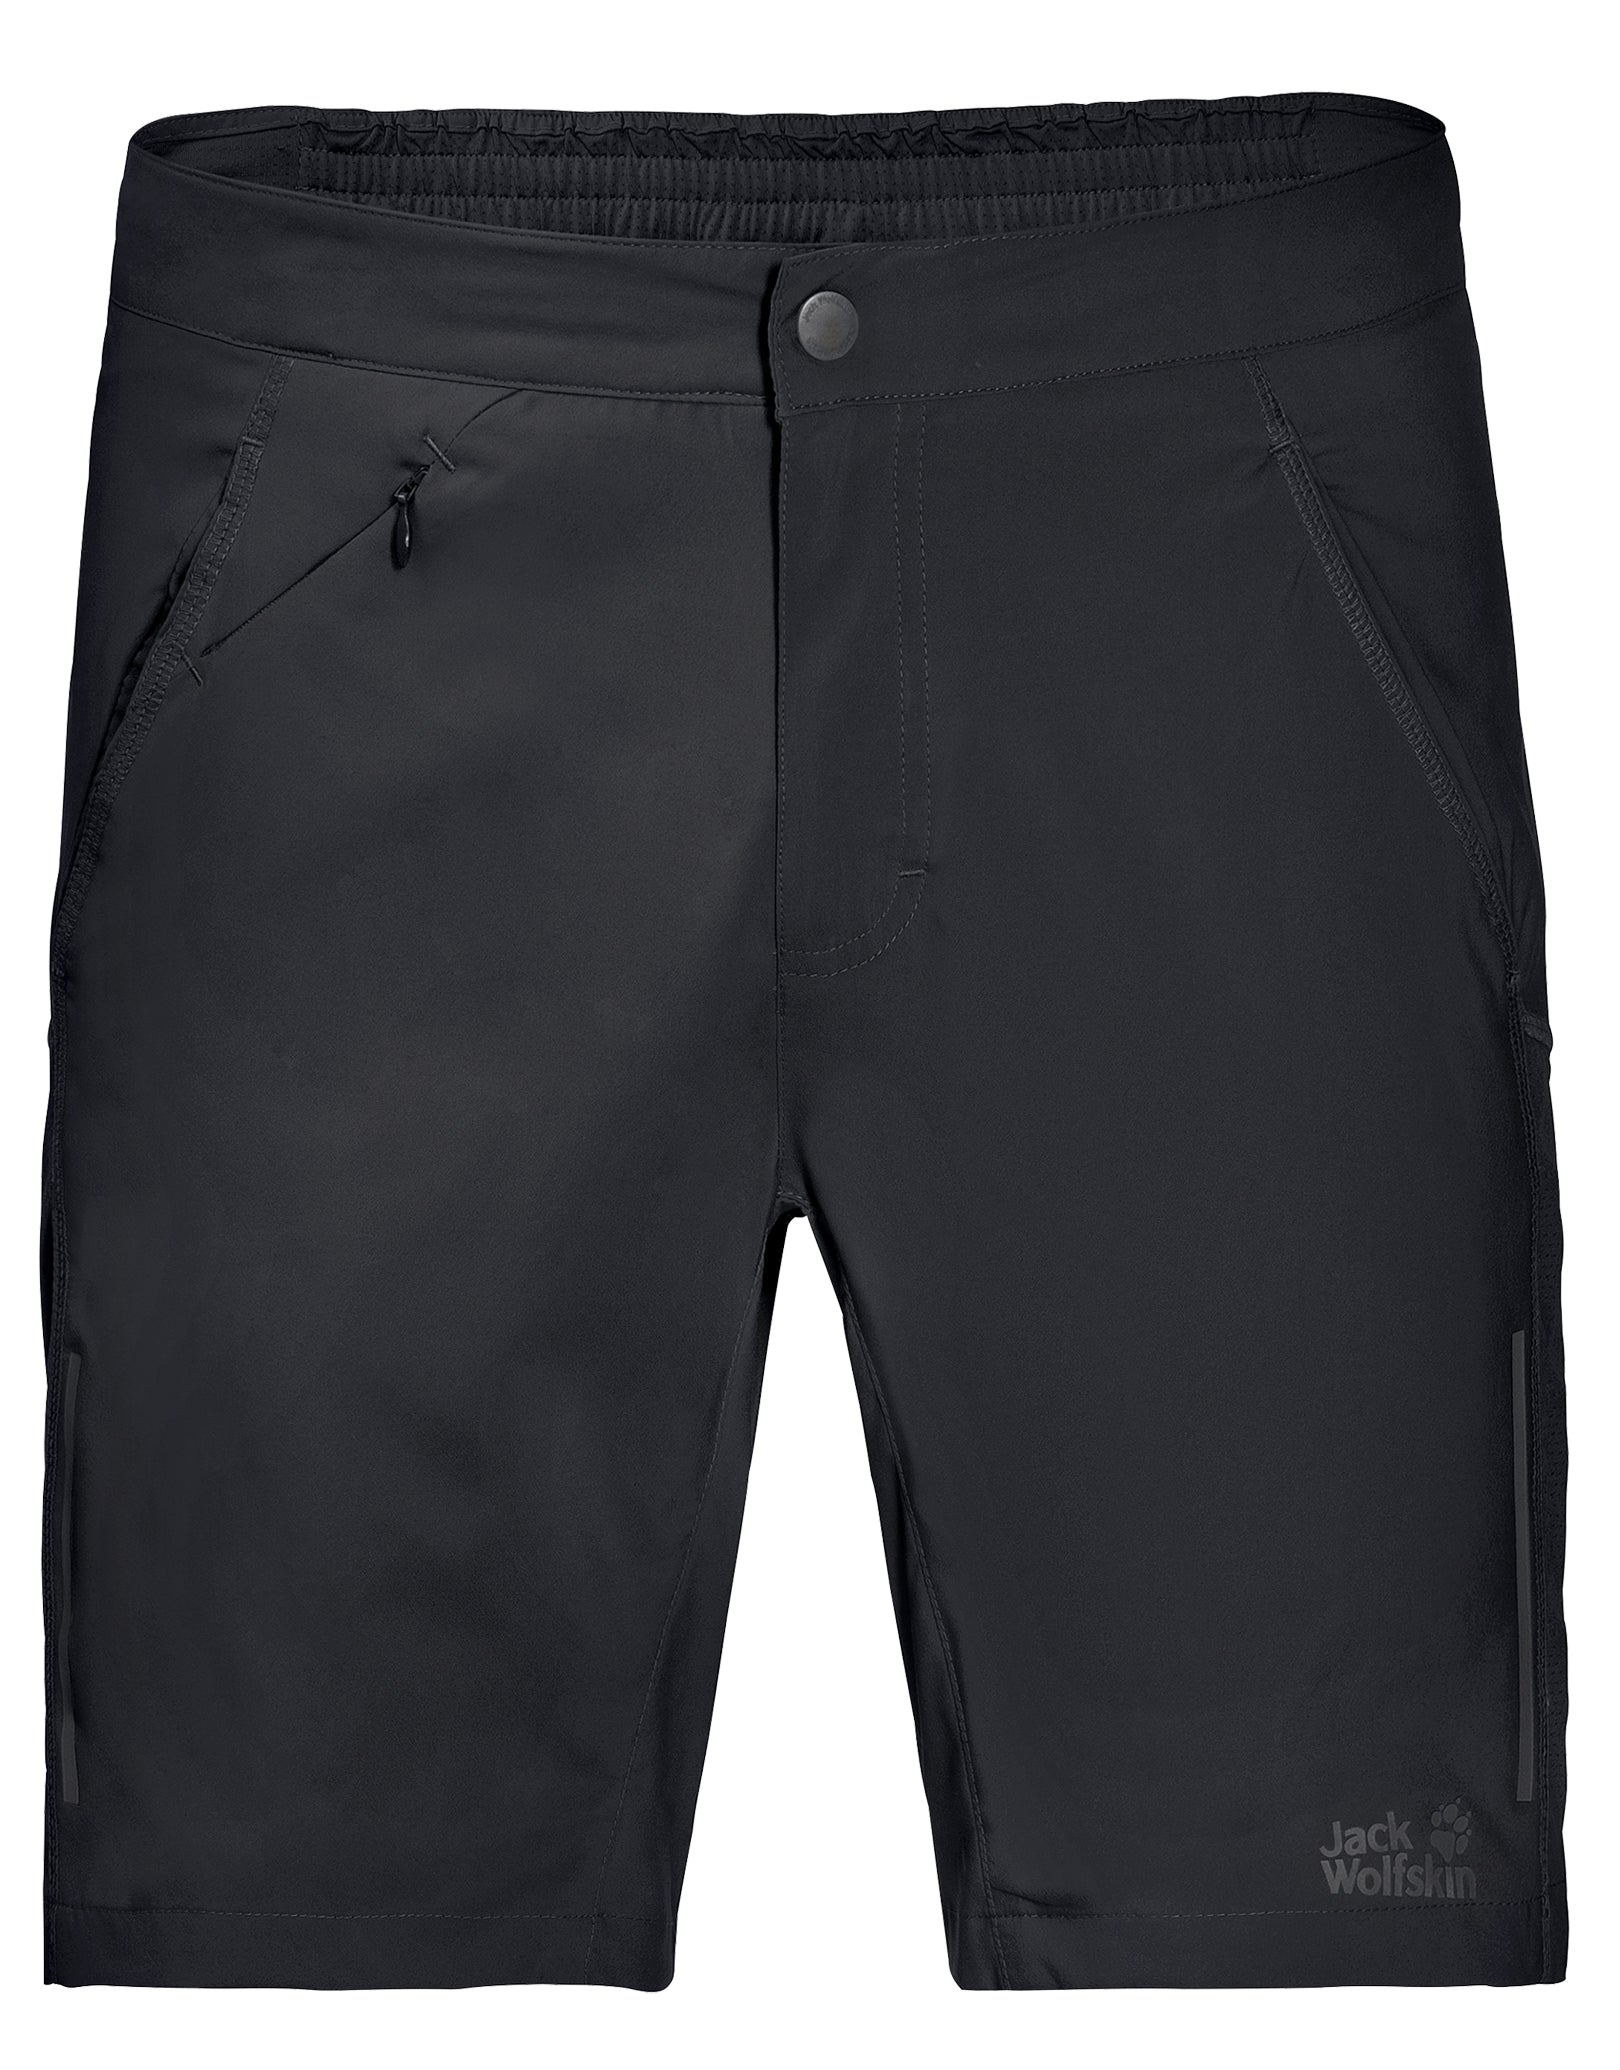 san francisco 21e35 527dd Mens Passion Trail XT Shorts - Black